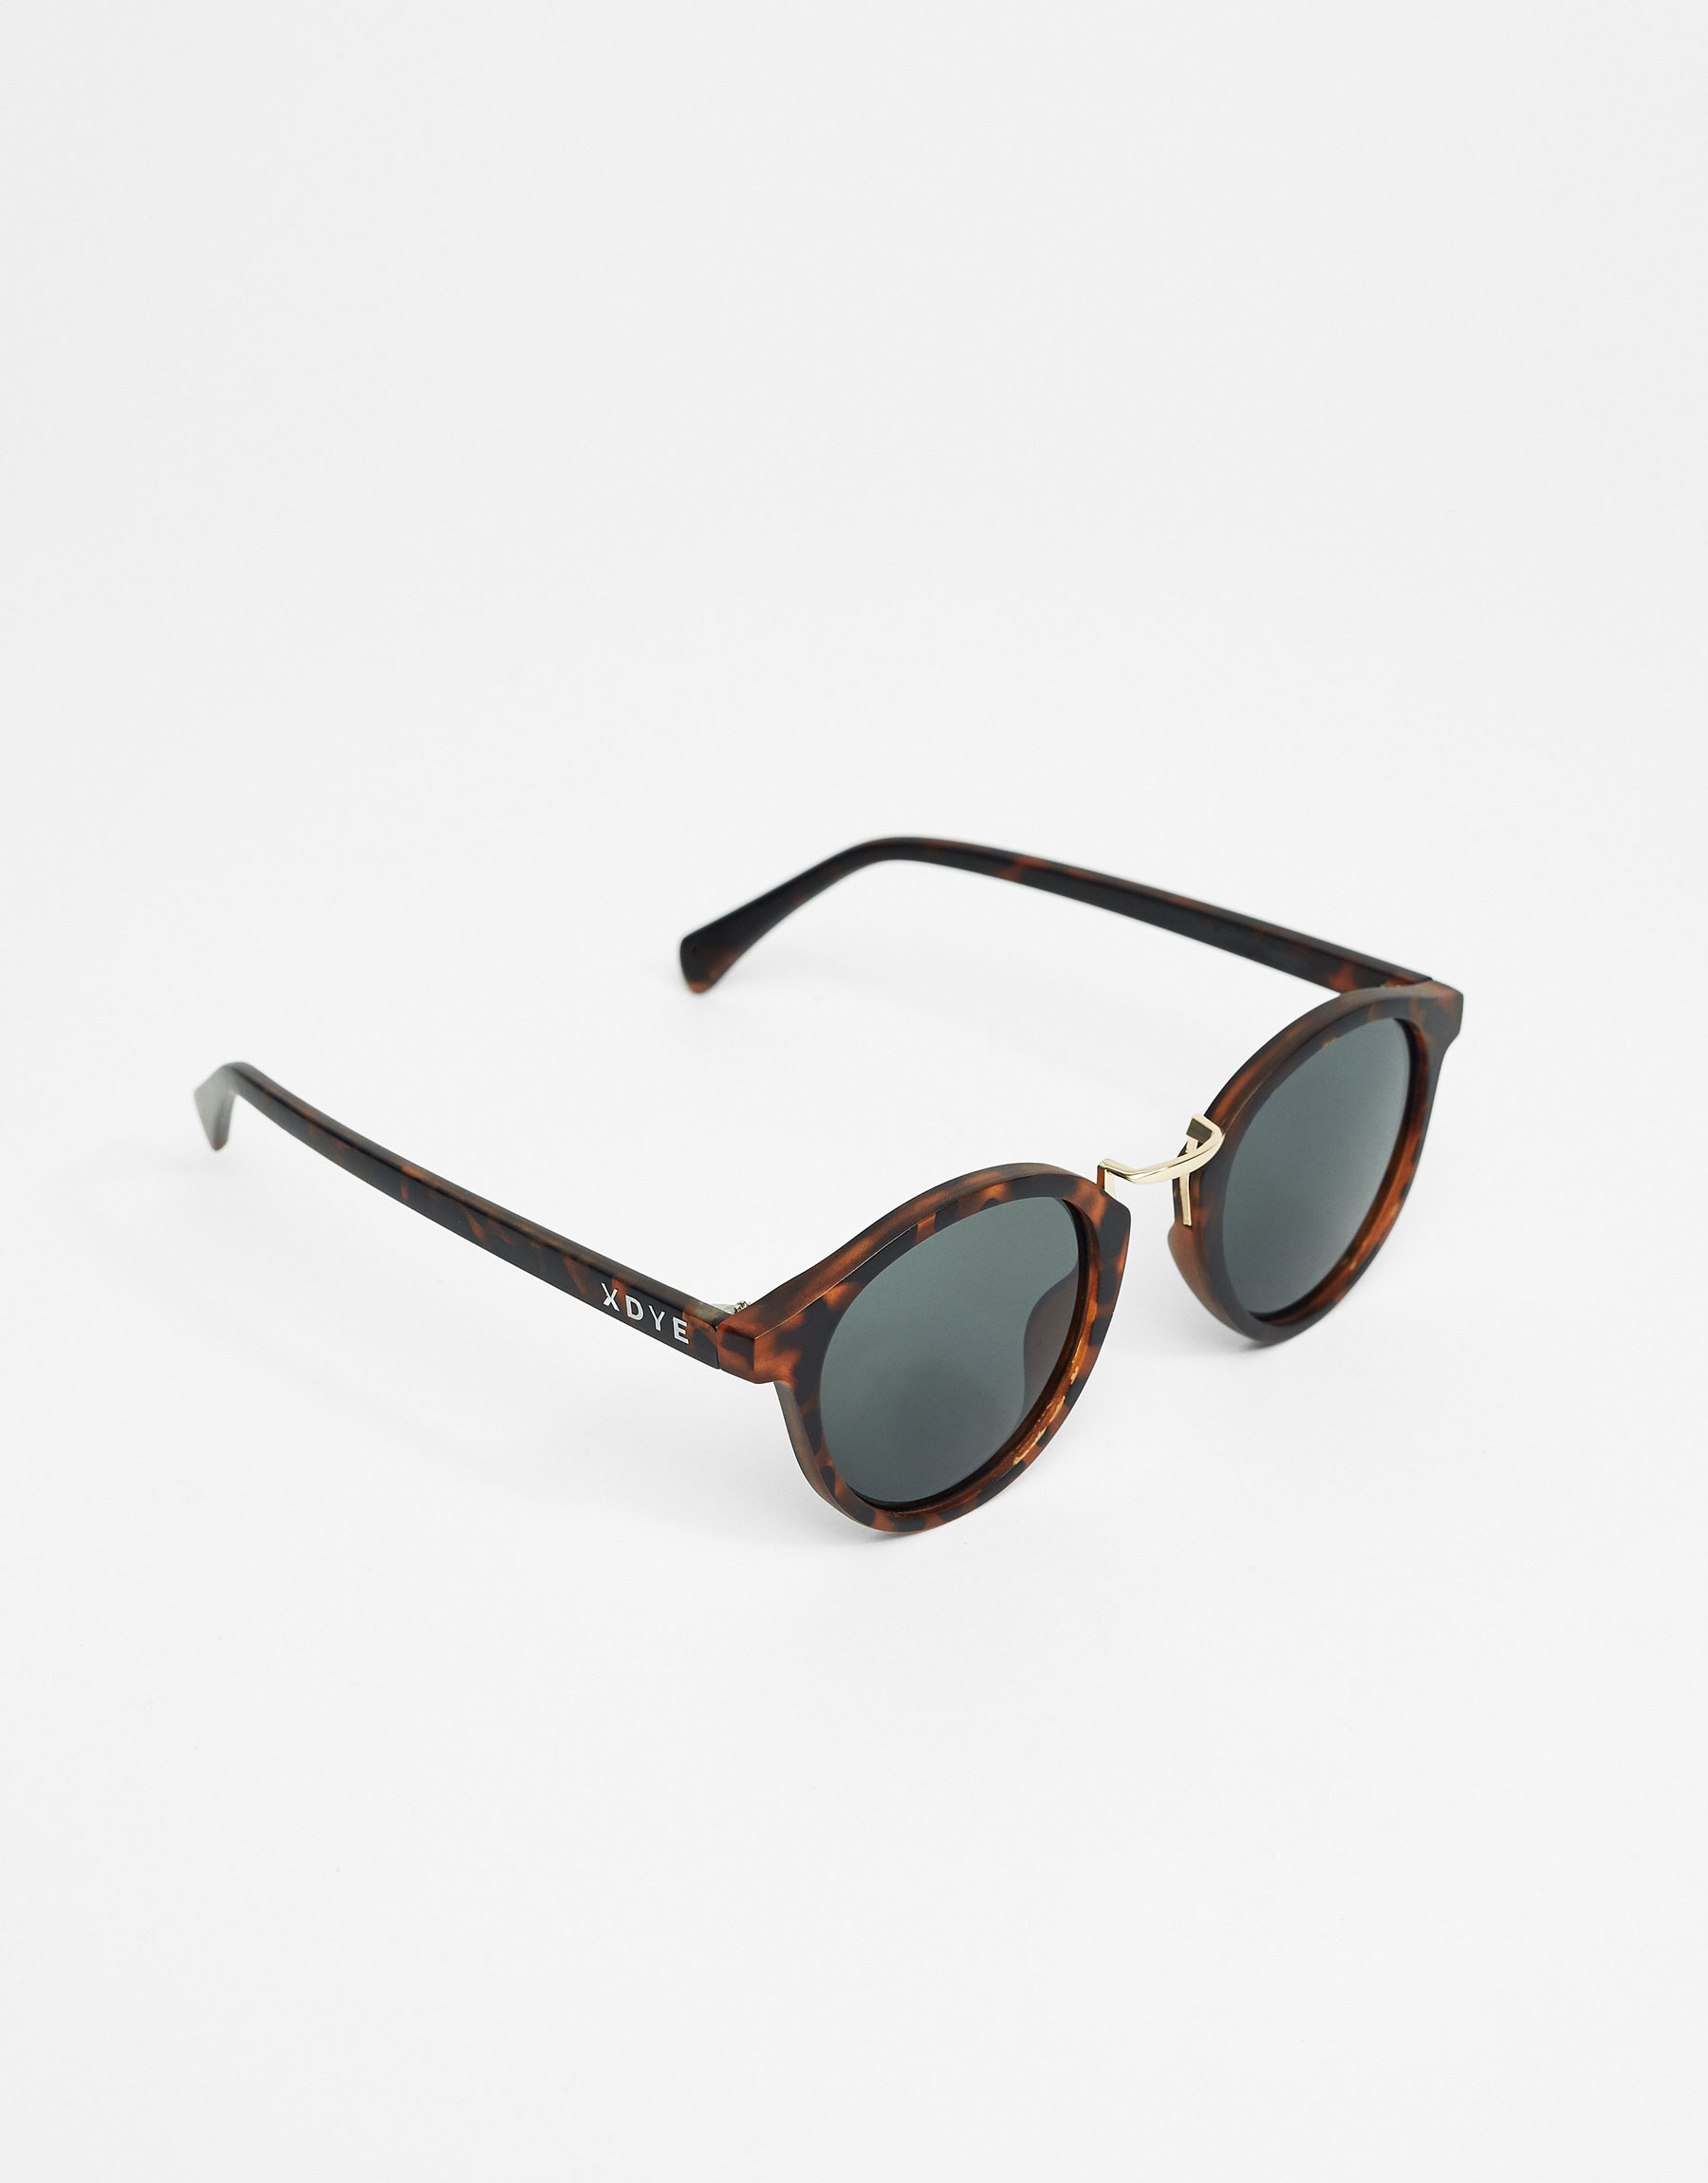 XDYE Sunglasses - Vintage Bridge